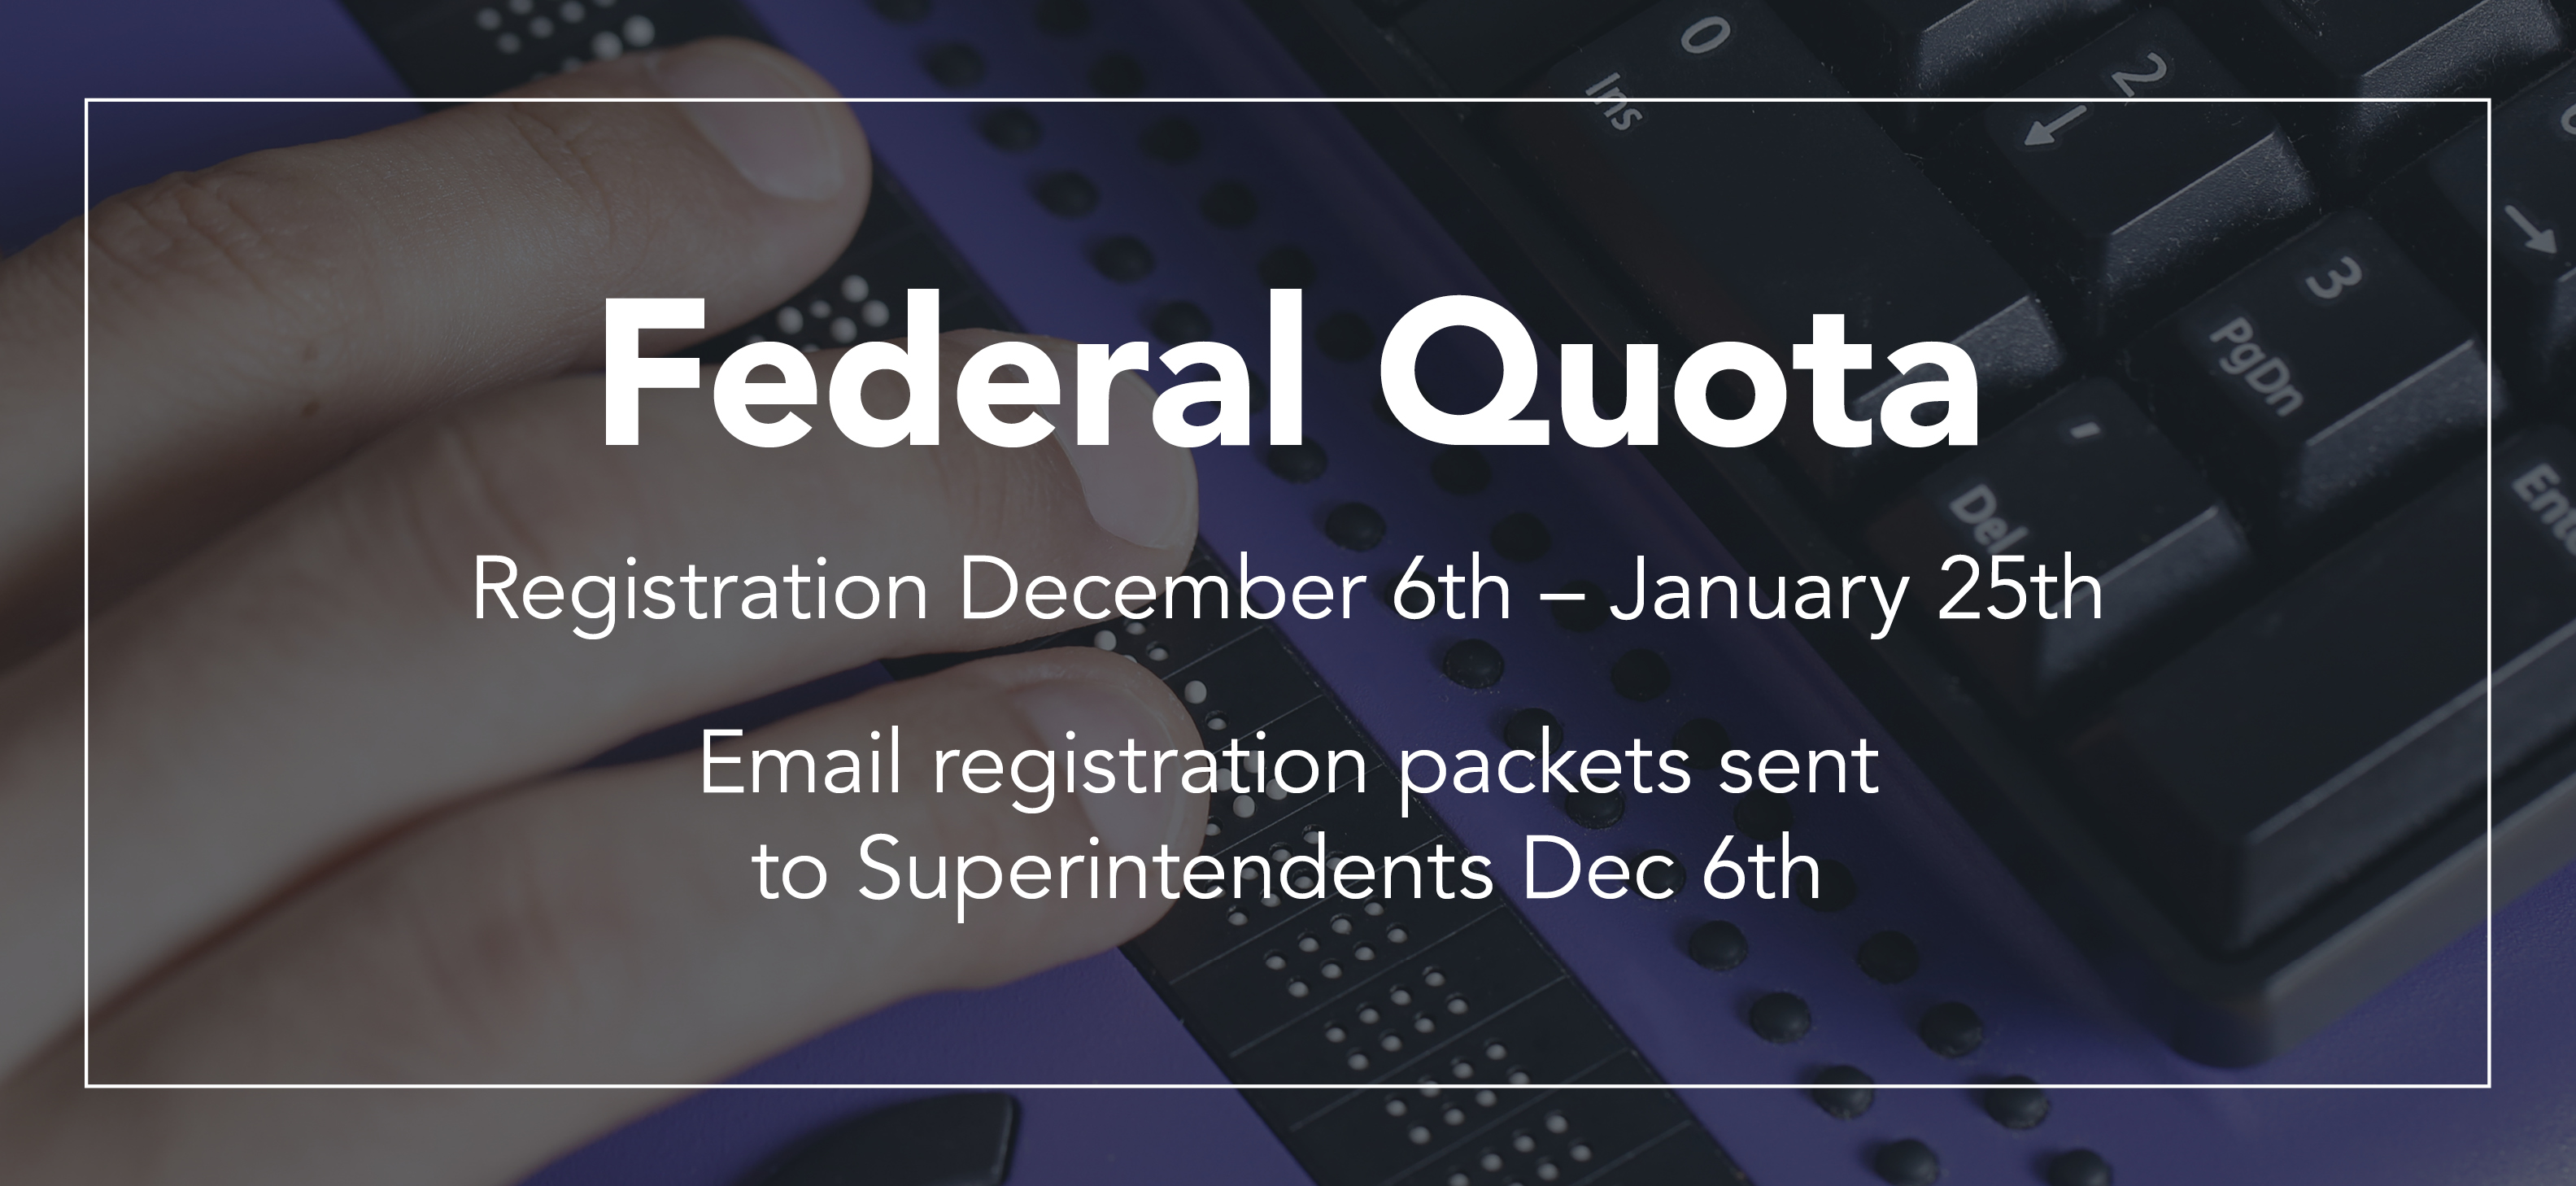 Federal Quota: Registration December 6th - January 25th. Email registration packets sent to Superintendents Dec 6th.